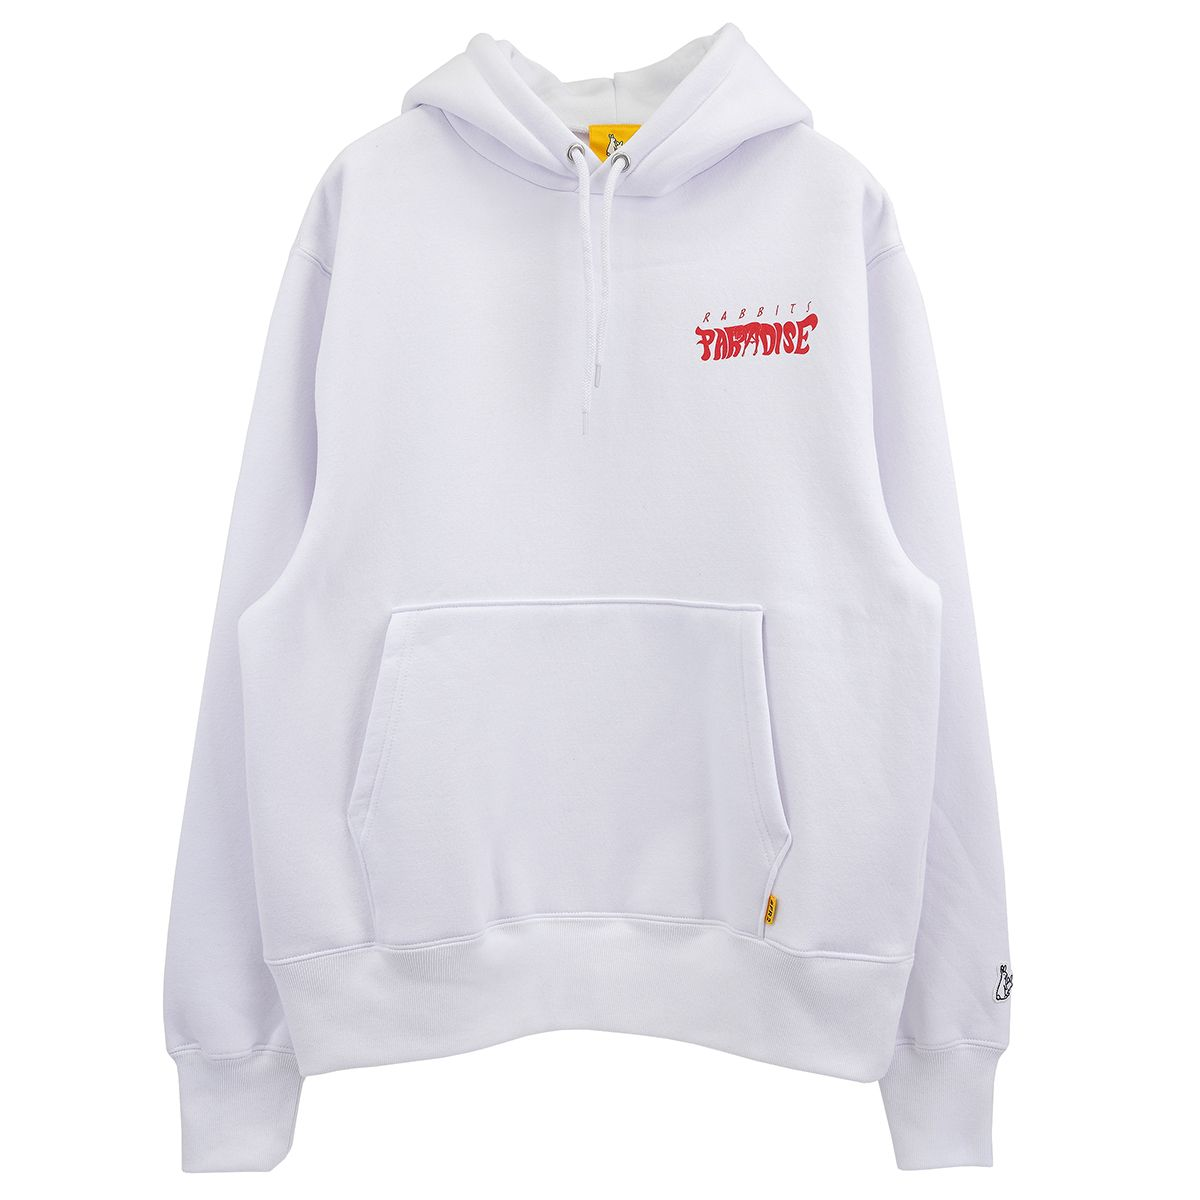 #FR2 x Made In Paradise PARADISE APPLE HOODIE / 001 : WHITE